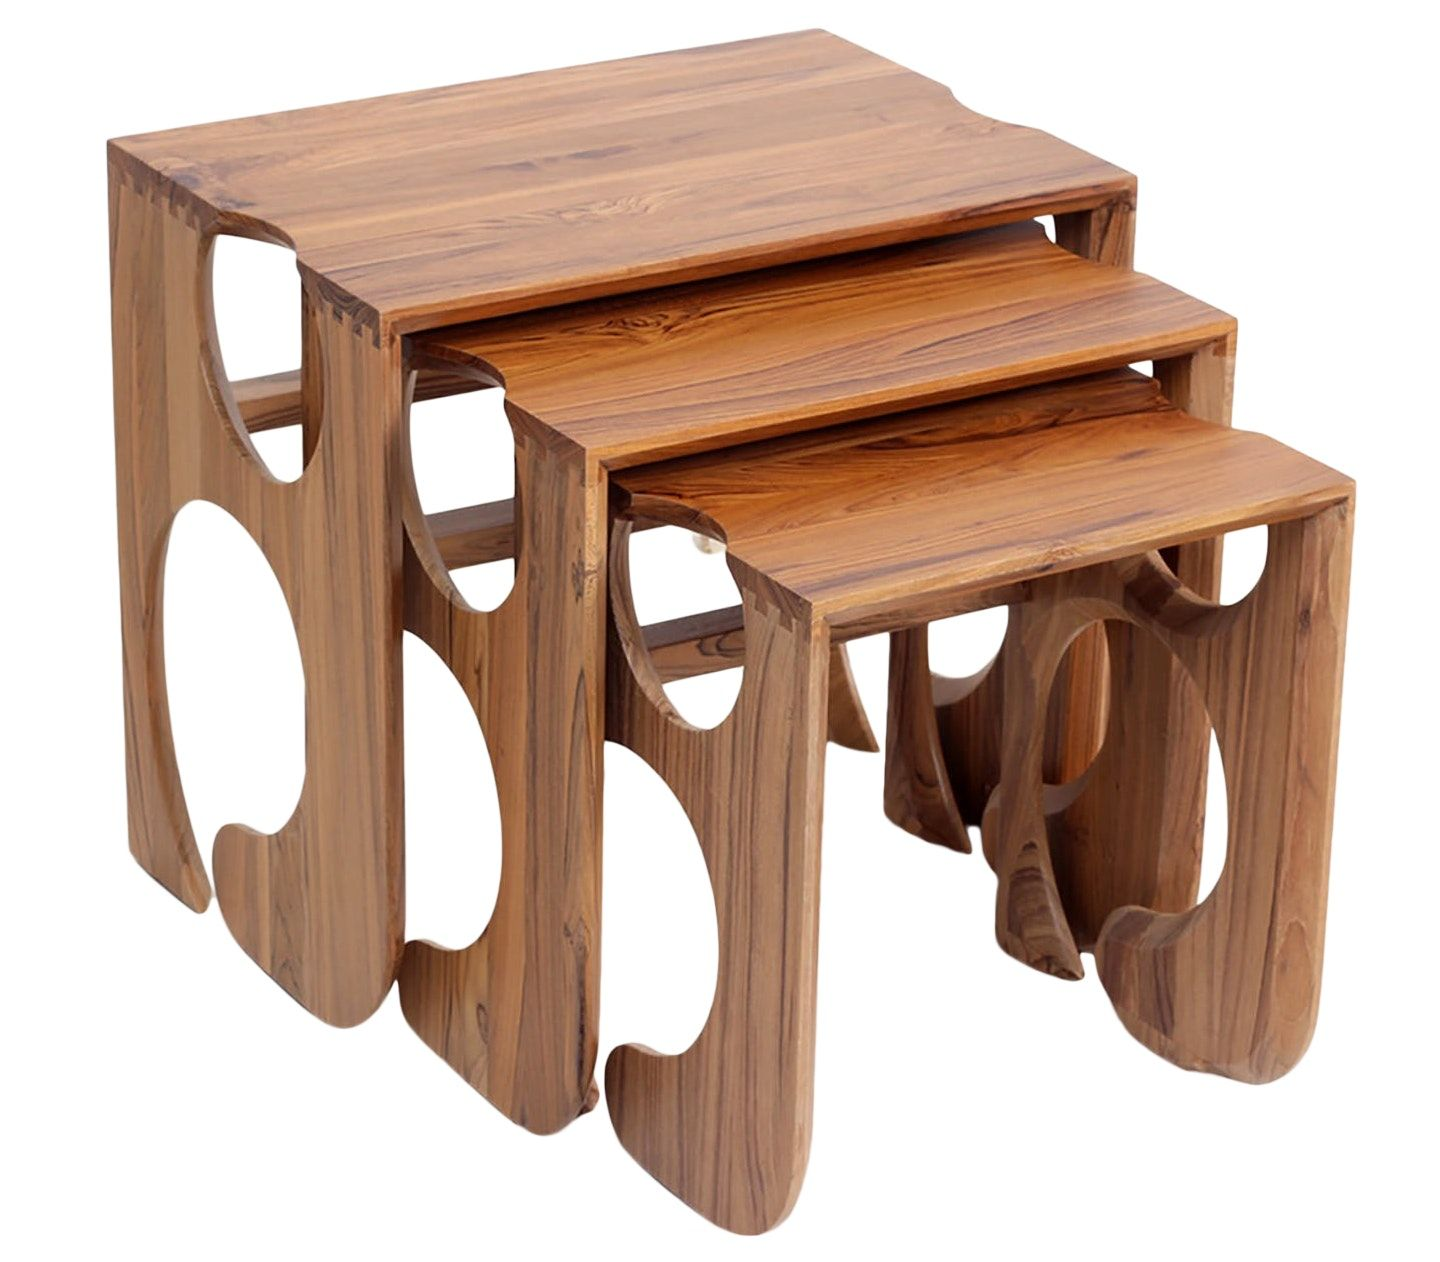 Tridha A Nested Table Set By Alankaram Nesting Tables End